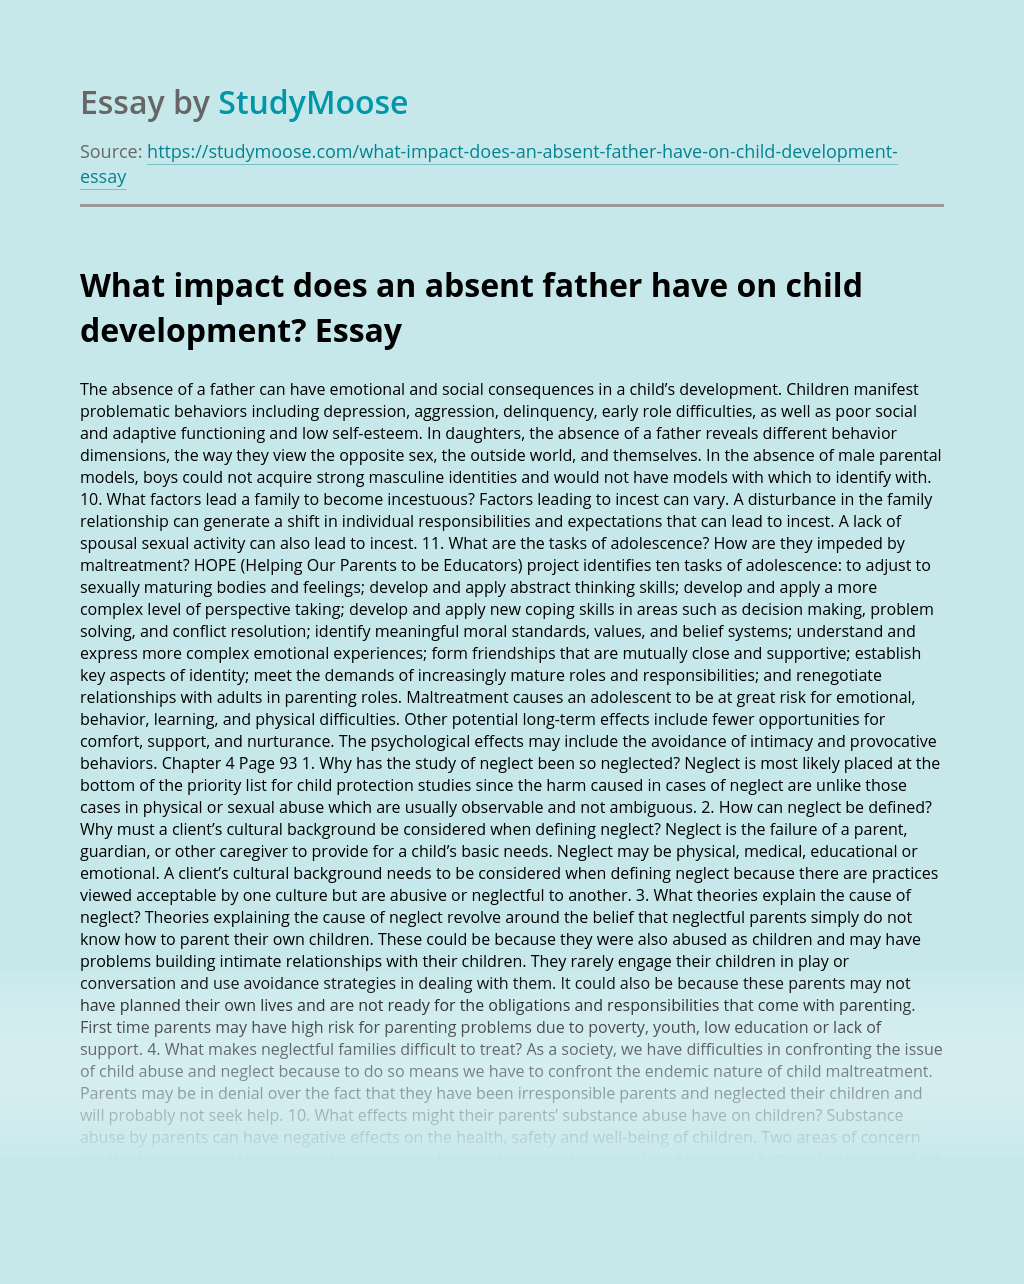 What impact does an absent father have on child development?